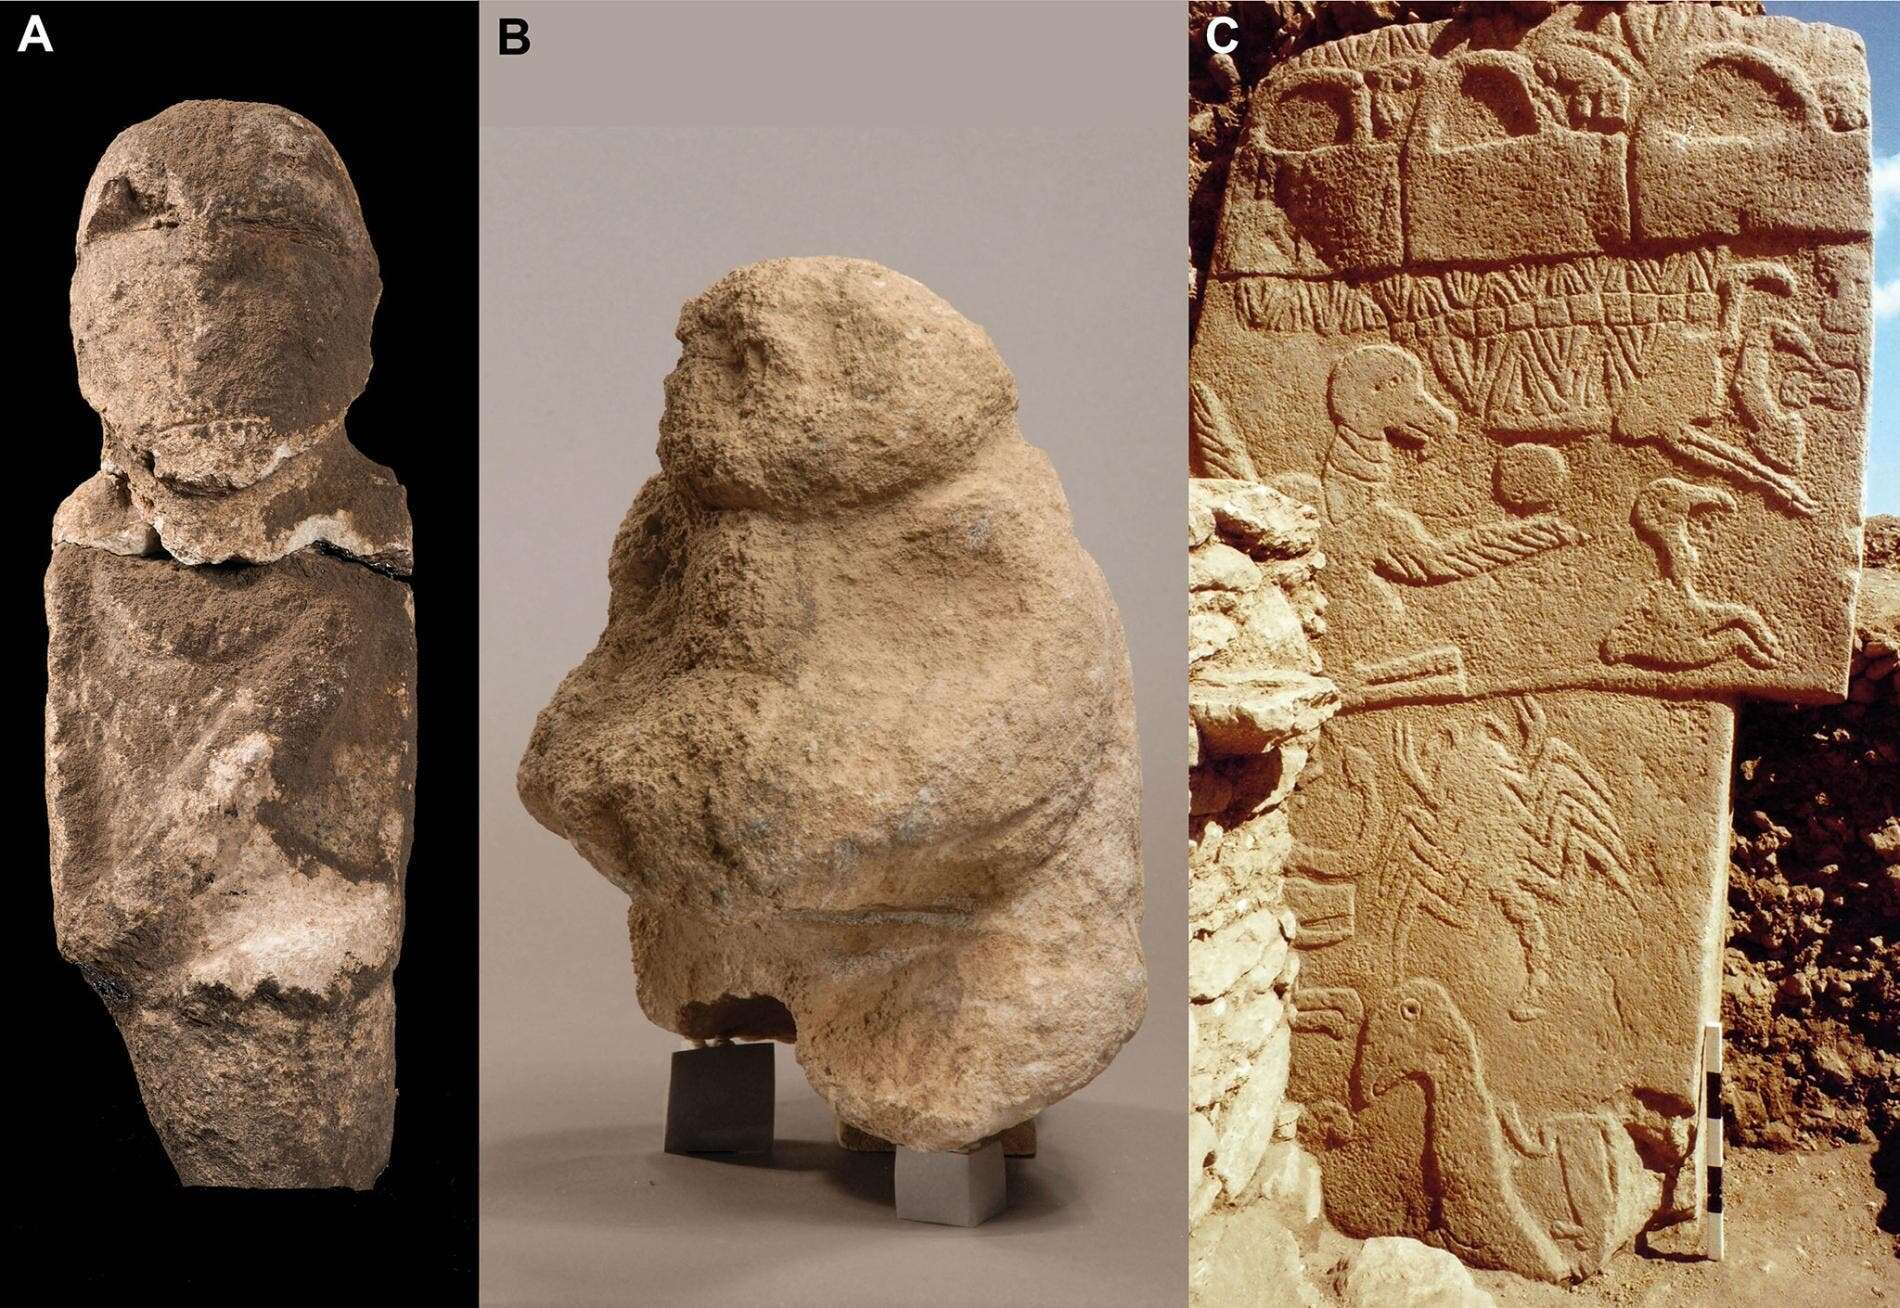 Carved human skull fragments found in world's oldest temple hint at